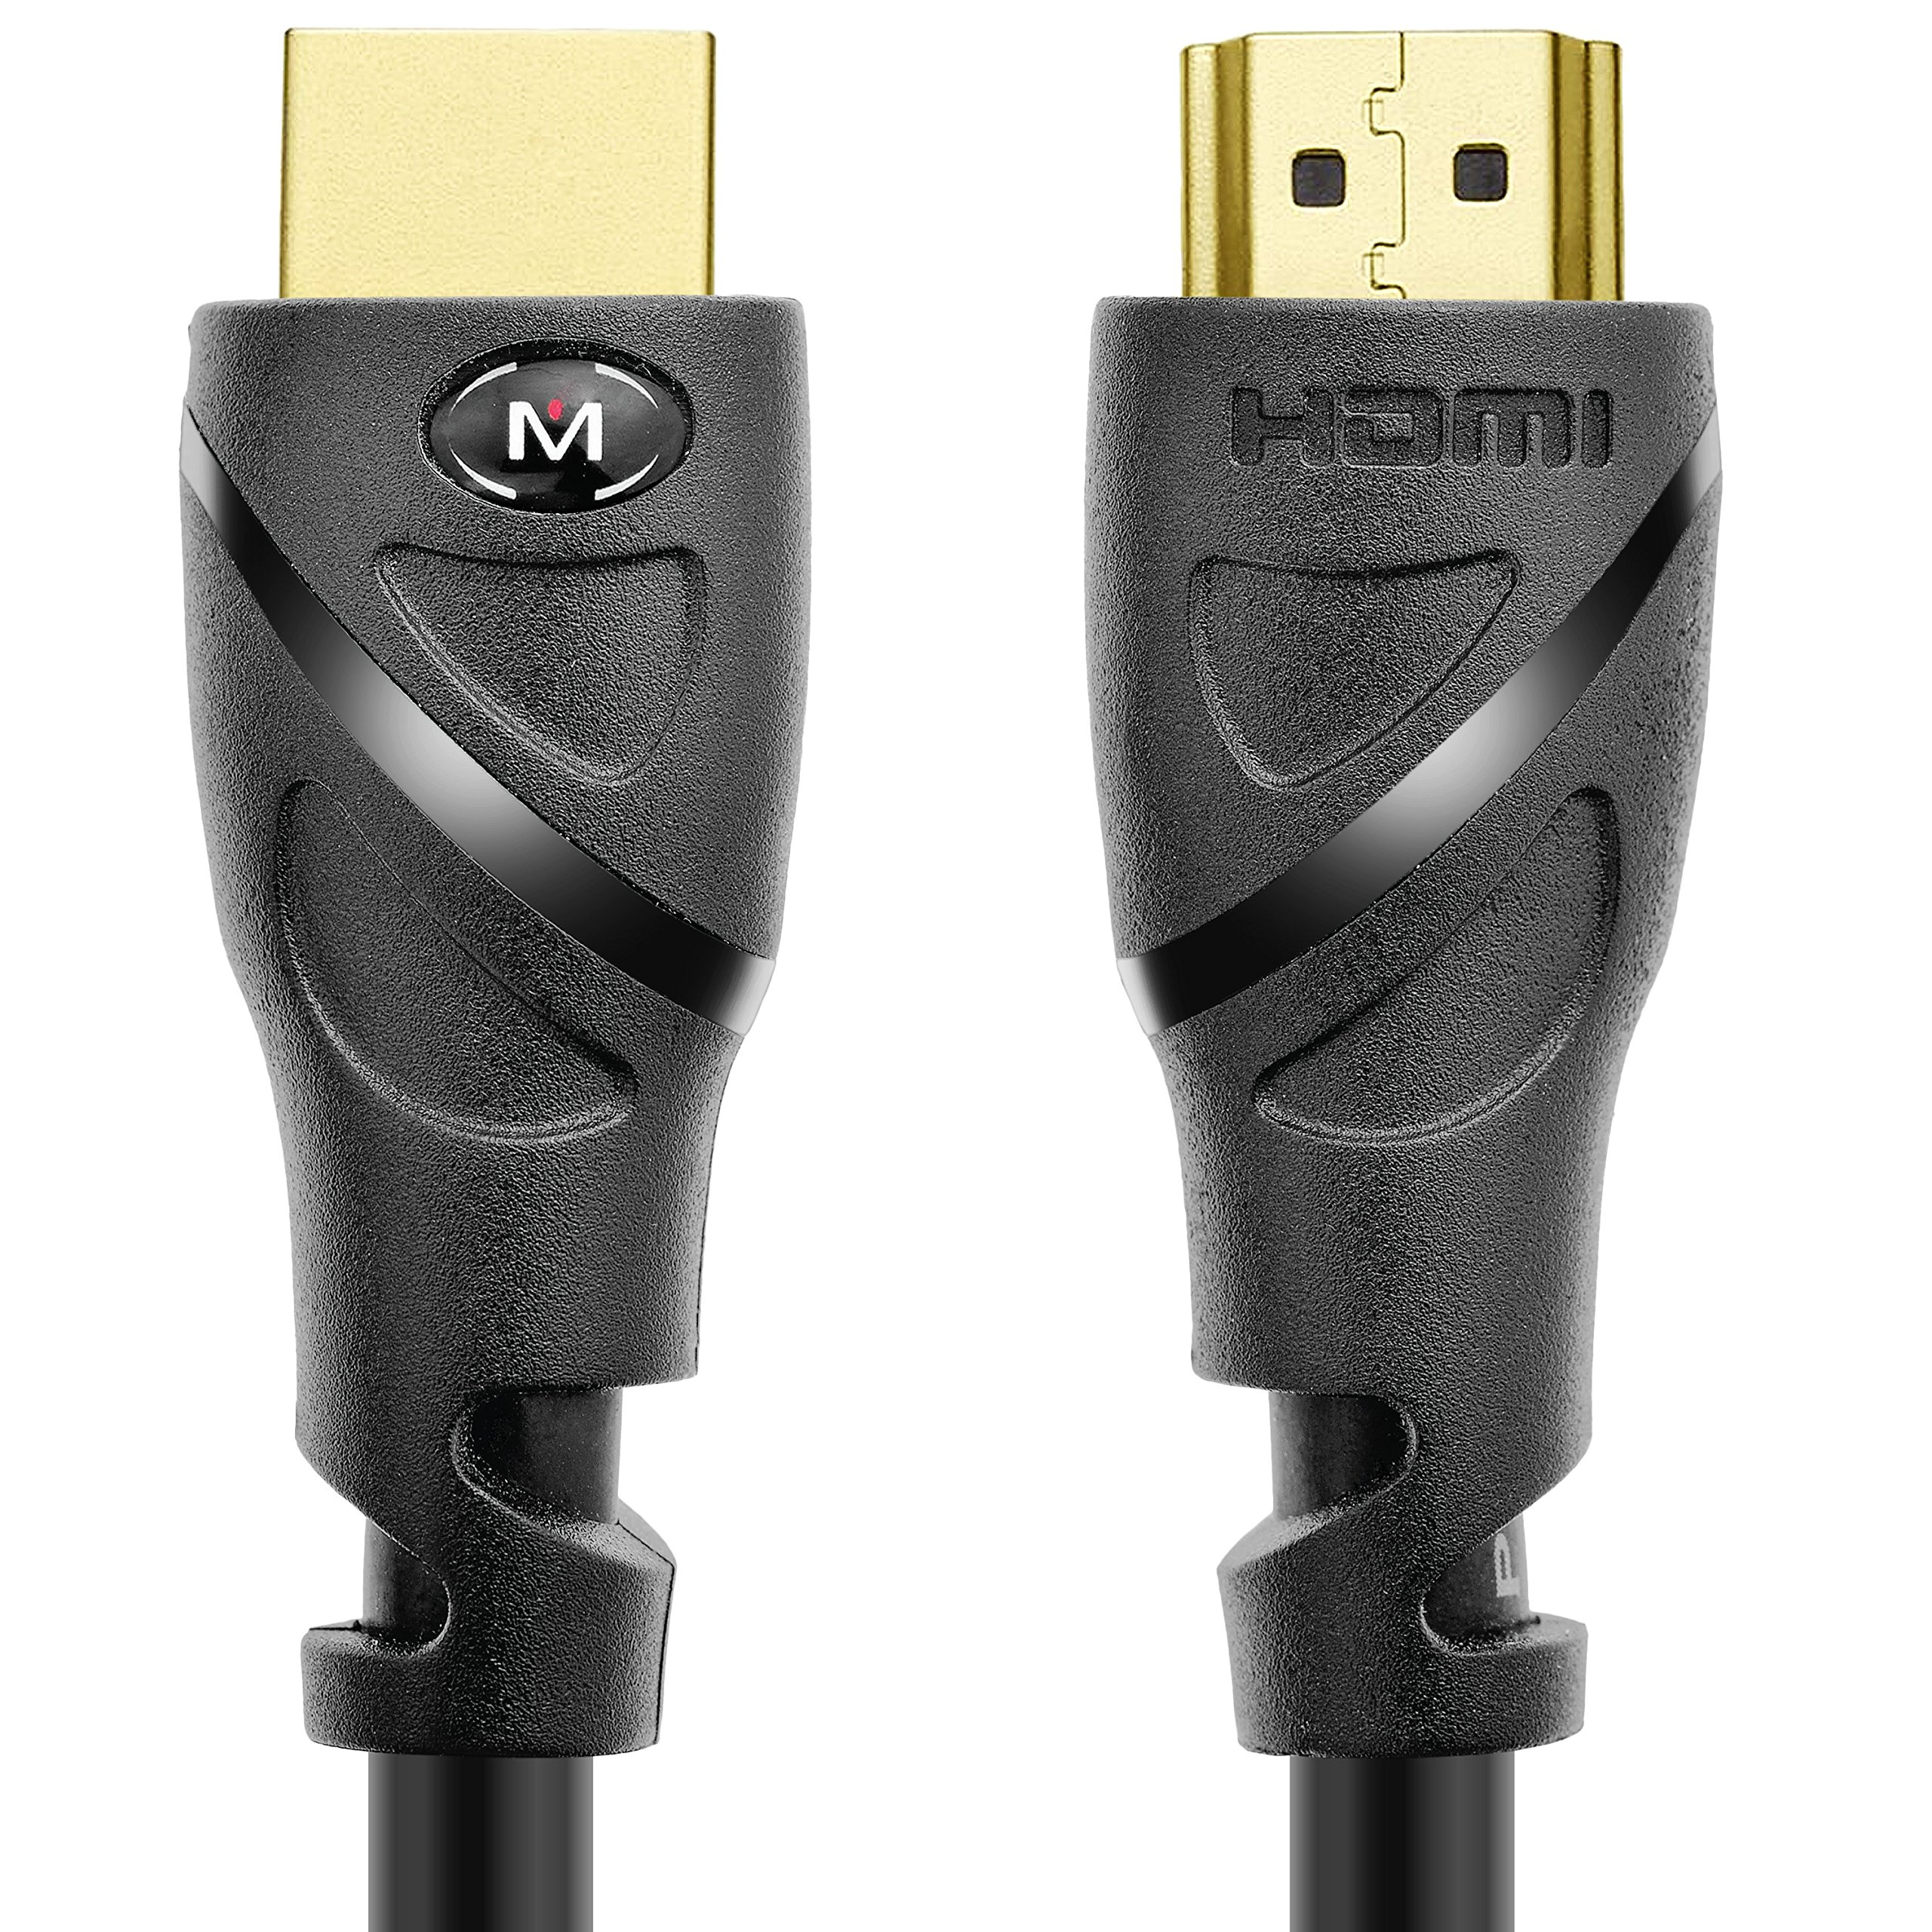 Mediabridge HDMI Cable (15 Feet) Supports 4K@60Hz, High Speed, Hand-Tested, HDMI 2.0 Ready - UHD, 18Gbps, Audio Return Channel by Mediabridge